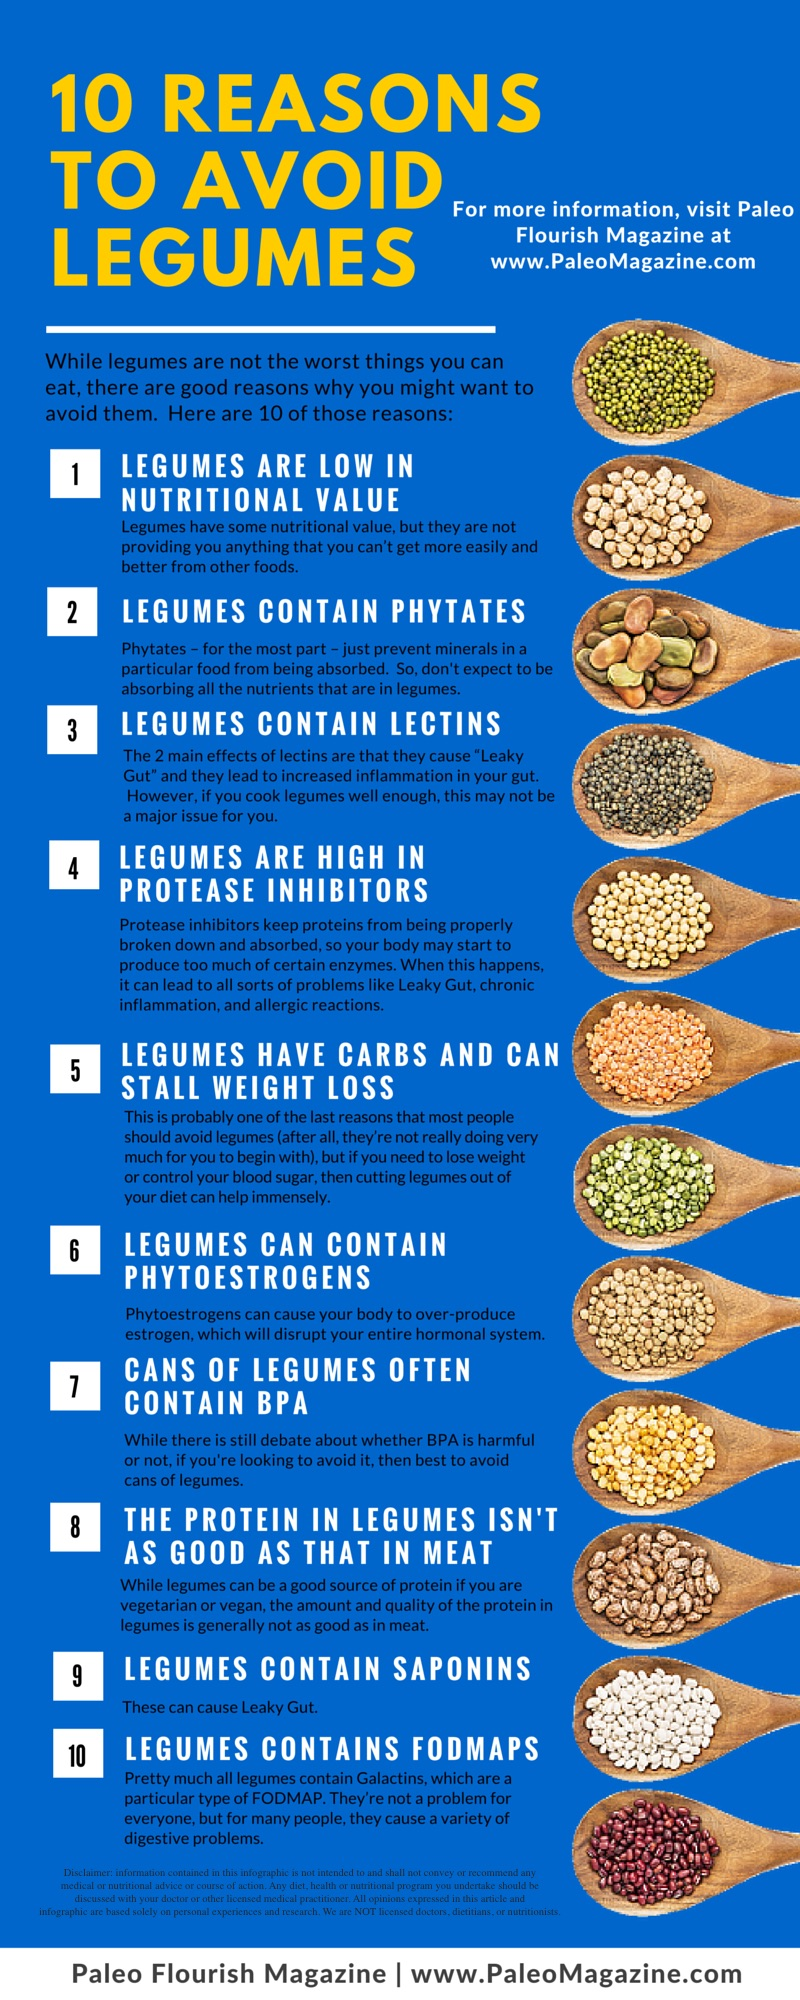 10 Reasons To Avoid Legumes - Paleo Diet http://paleomagazine.com/paleo-why-legumes-are-bad